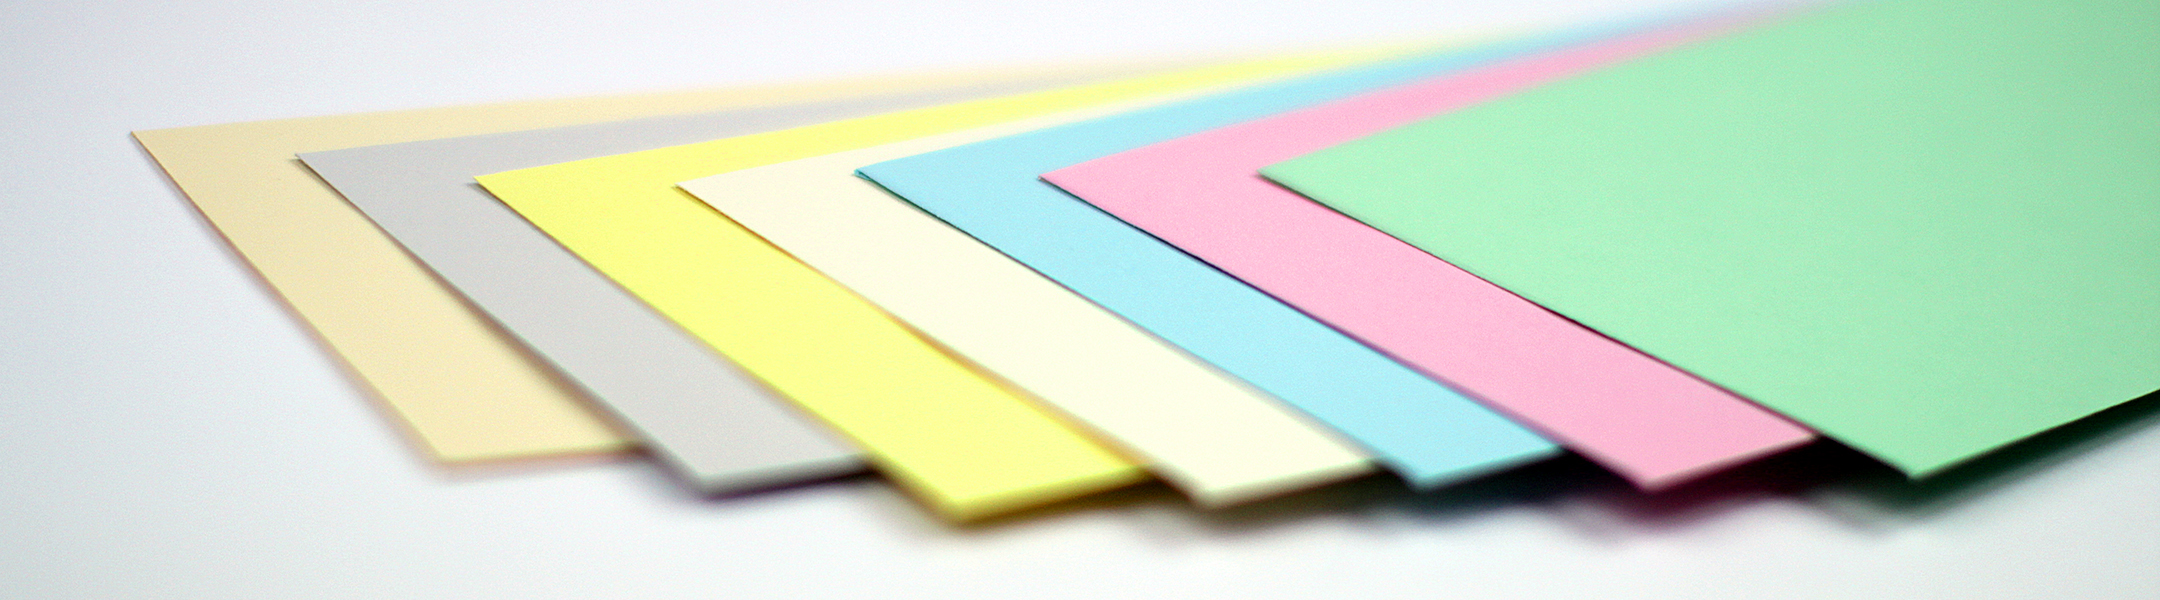 Envelopes made  with EarthChoice Envelope Colors Paper by Domtar